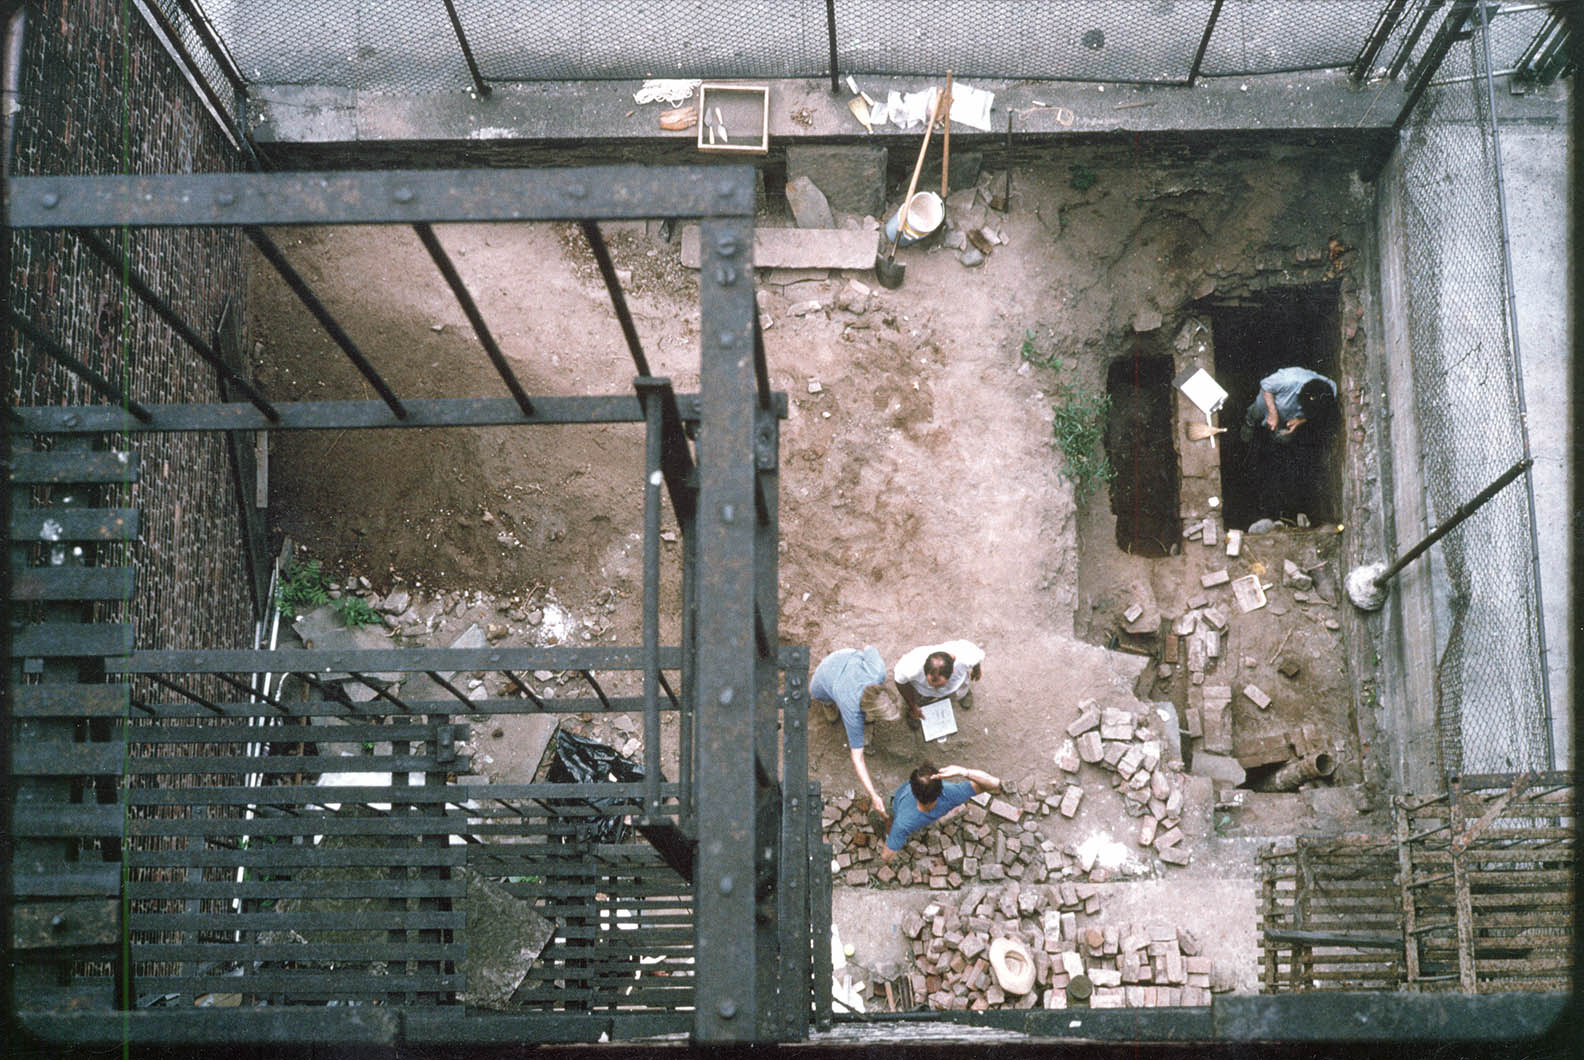 97 Orchard Street Rear Yard excavation with privy feature at top right, 1993. Collection of the Tenement Museum.